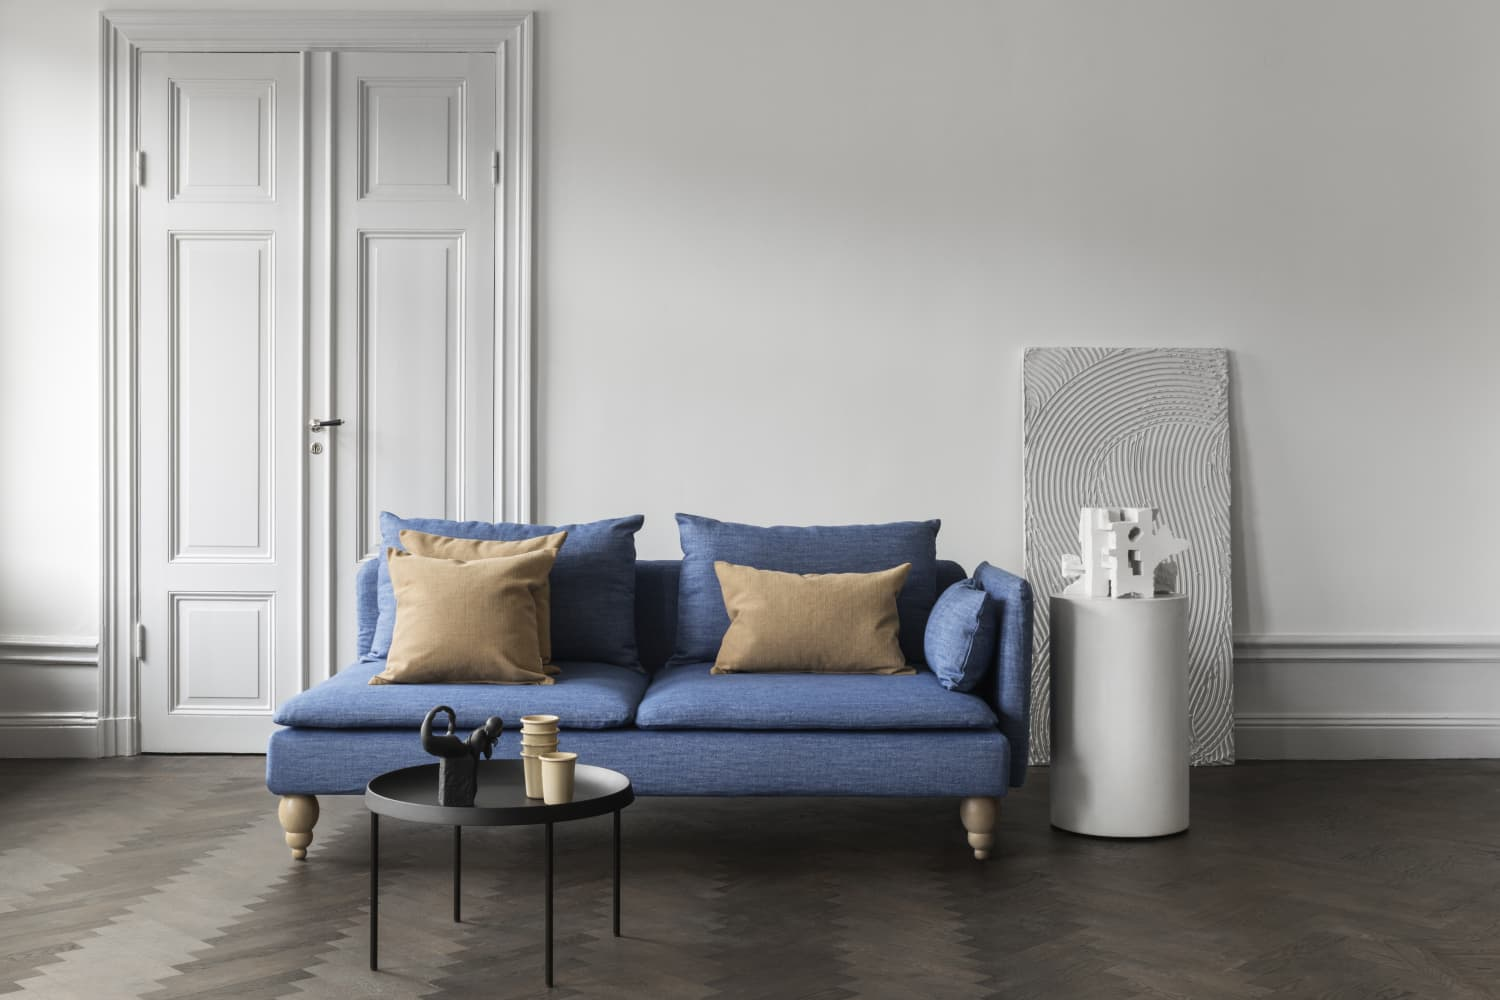 How to Totally Transform Your Sofa (Without Buying a New Sofa)